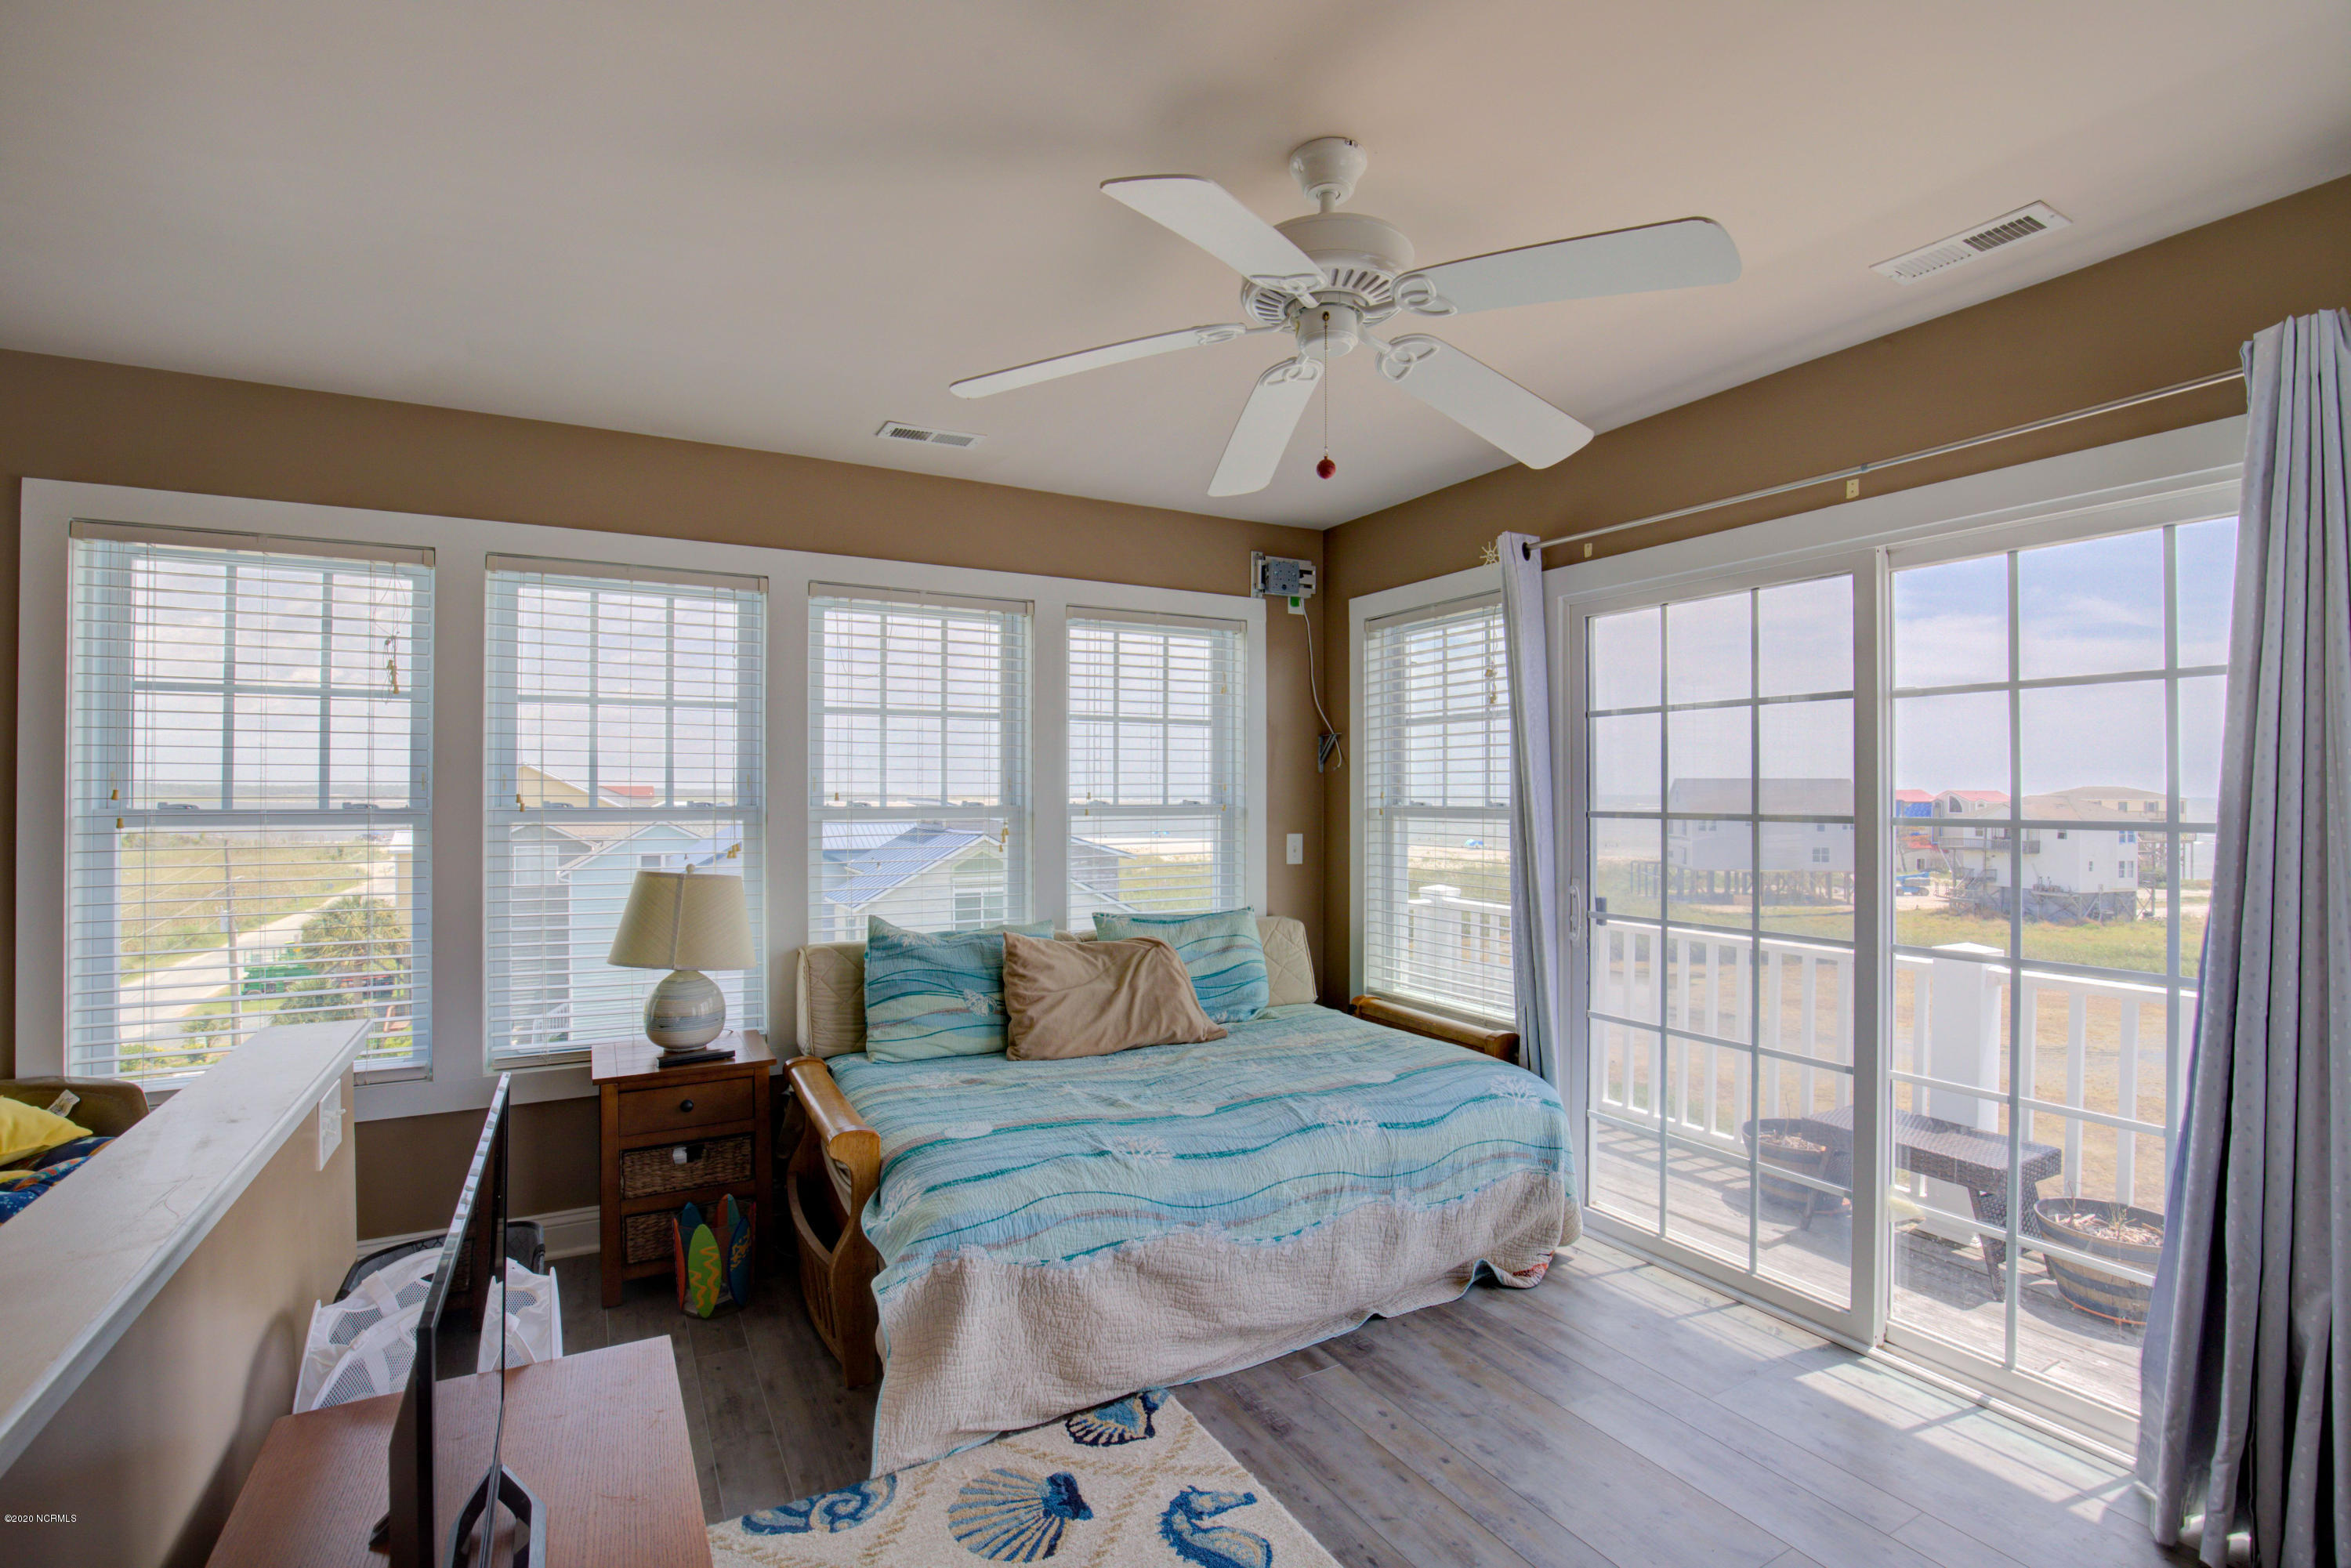 3904 River Rd, North Topsail Beach, North Carolina 28460, 5 Bedrooms Bedrooms, ,3 BathroomsBathrooms,Residential,For Sale,River Rd,100230059